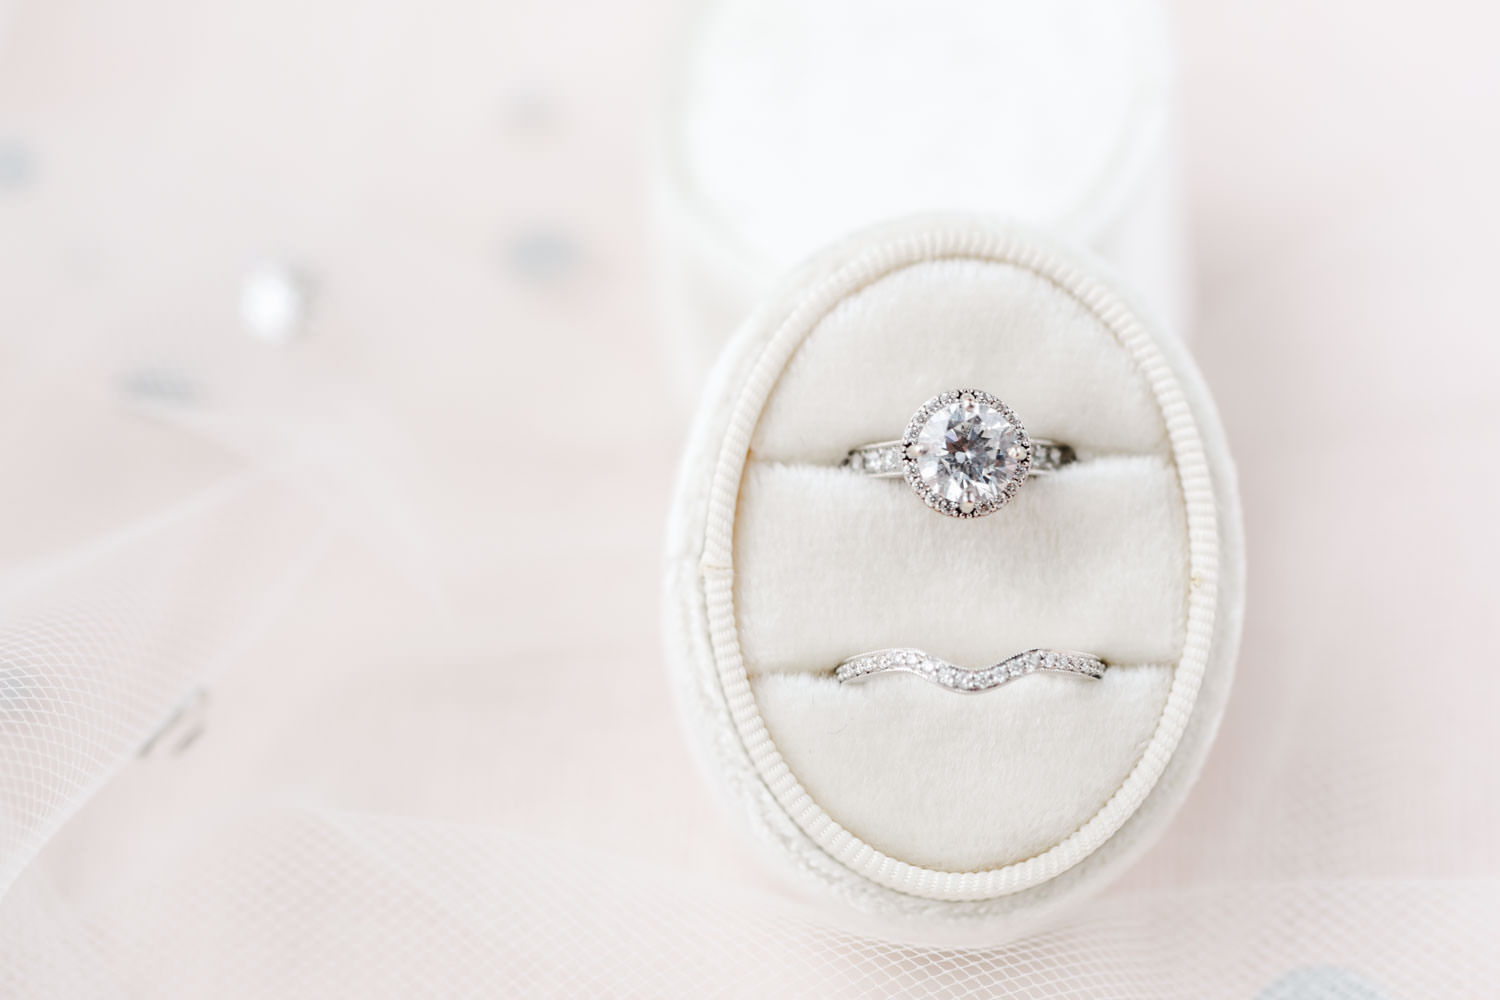 Diamond engagement ring with halo and wedding band with pave diamonds in an ivory oval velvet ring box, Cavin ELizabeth Photography